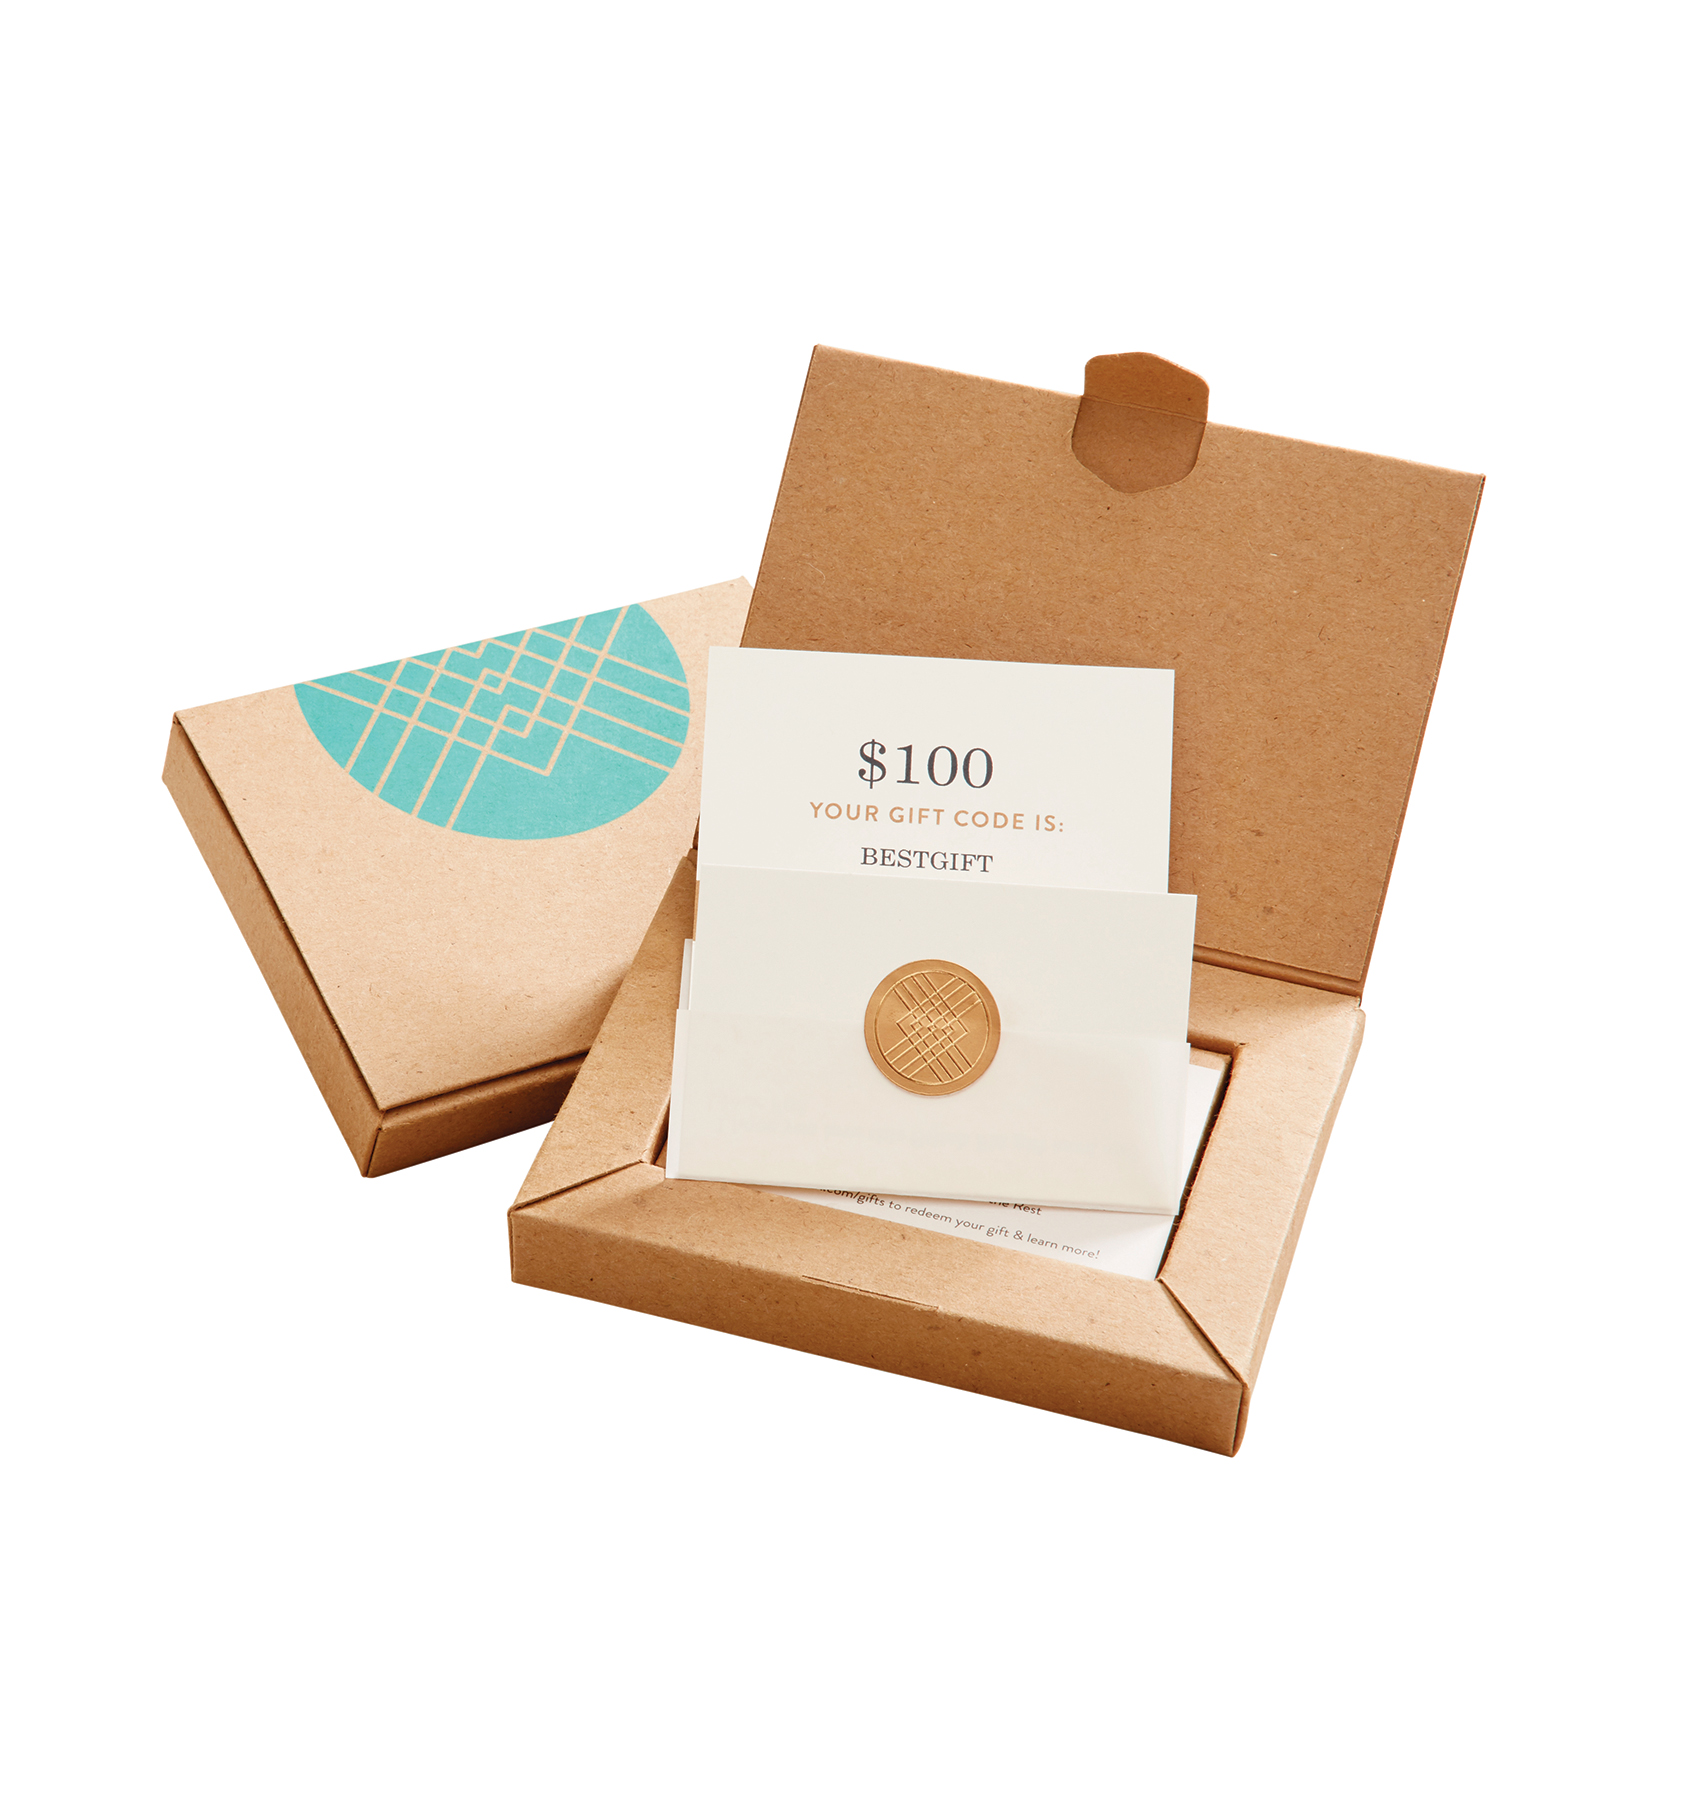 fbd9ddd2c18 Stitch Fix Styling Gift Card. Valentines Day Ideas for Her  ...